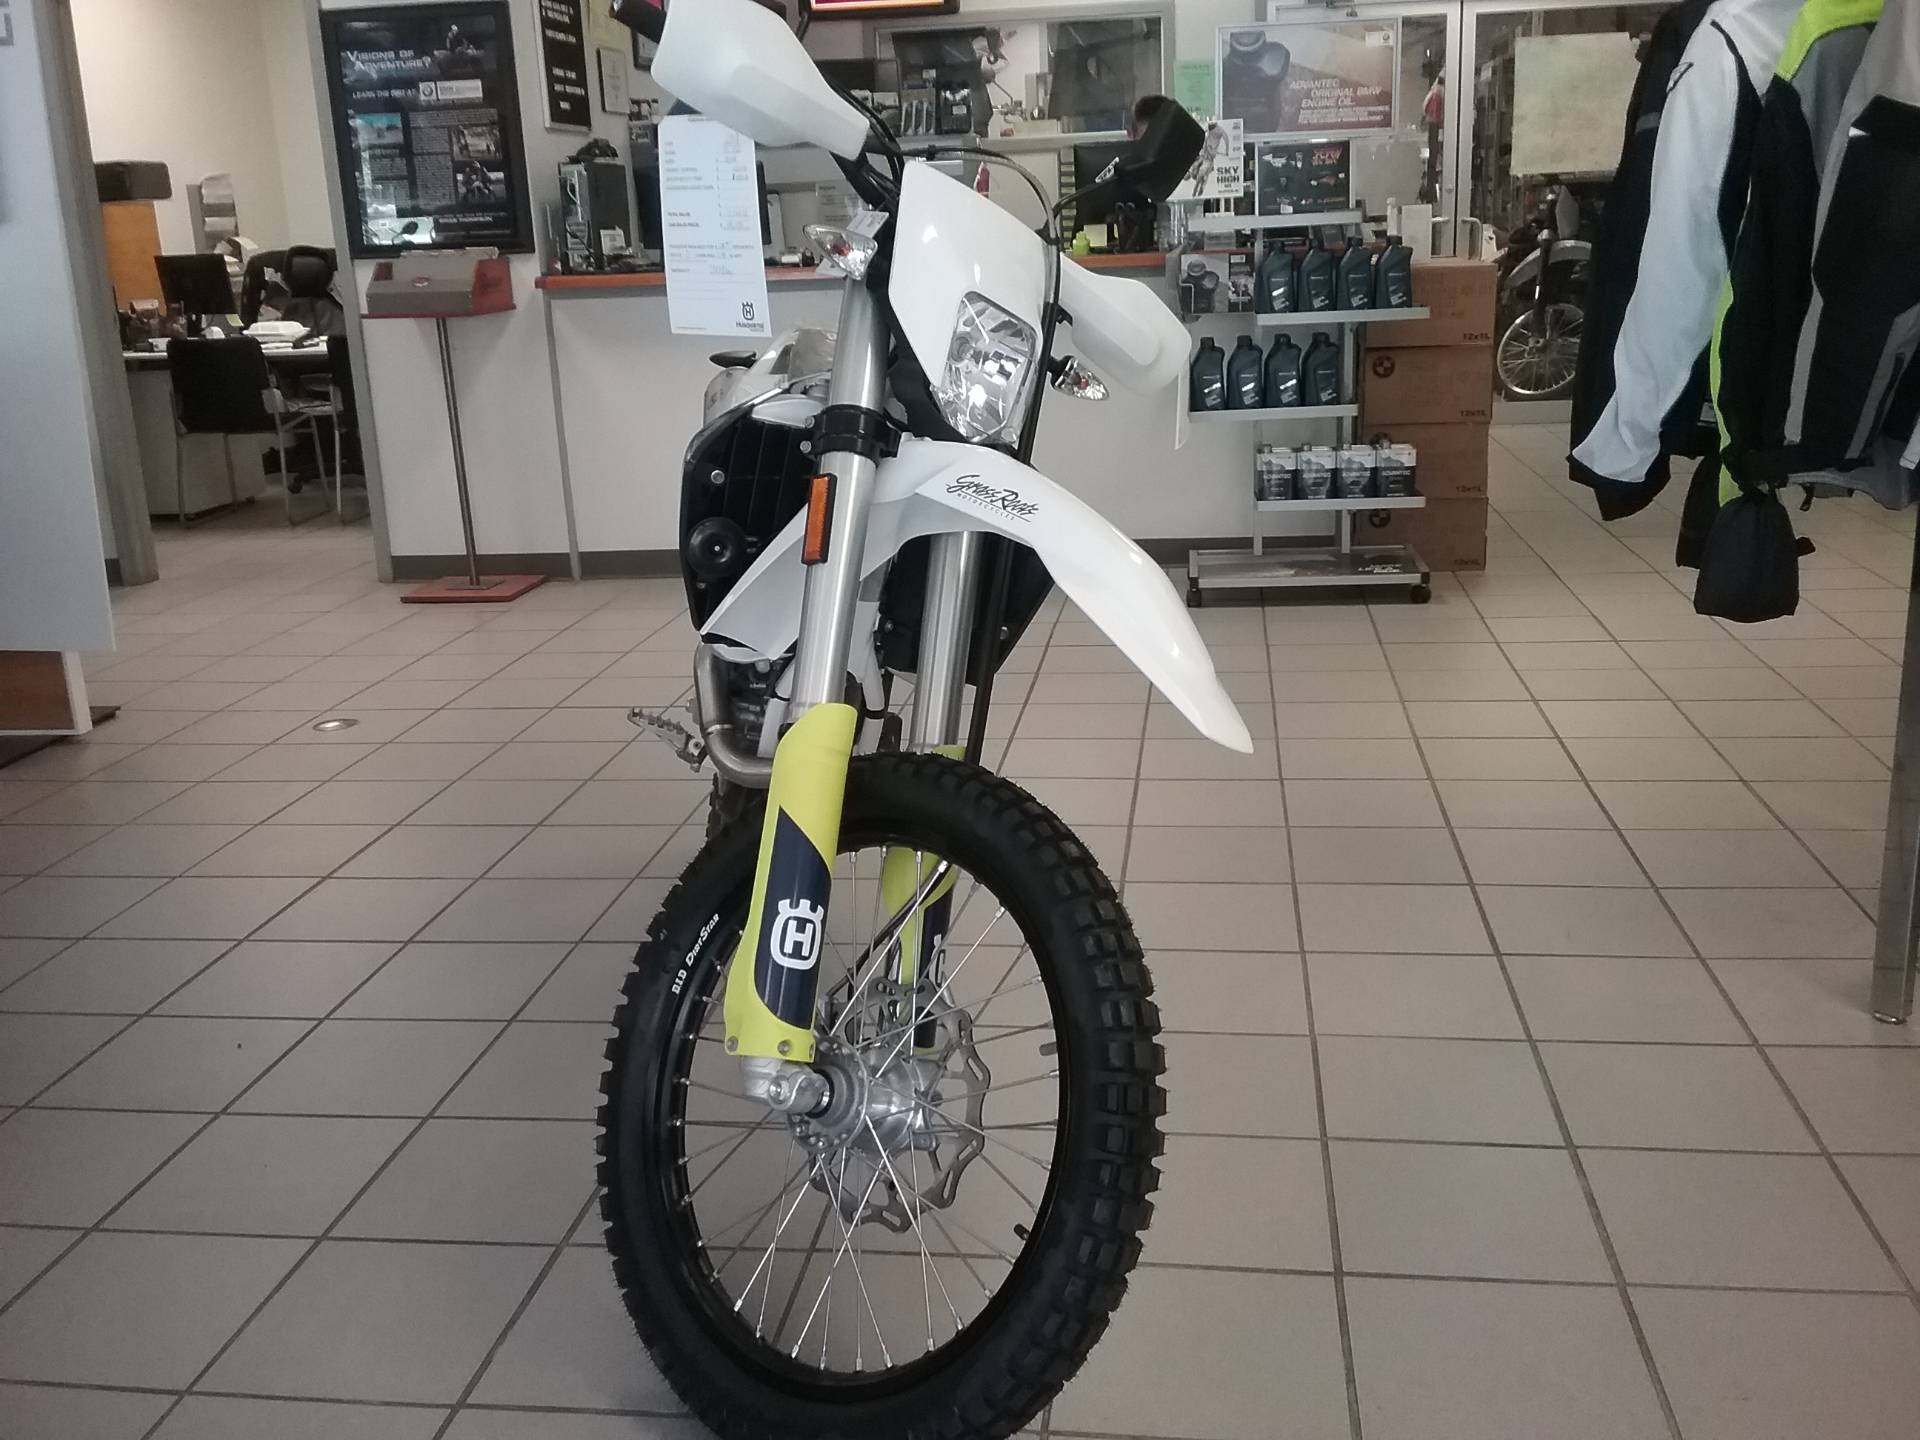 2018 Husqvarna FE 350/350 S in Cape Girardeau, Missouri - Photo 5